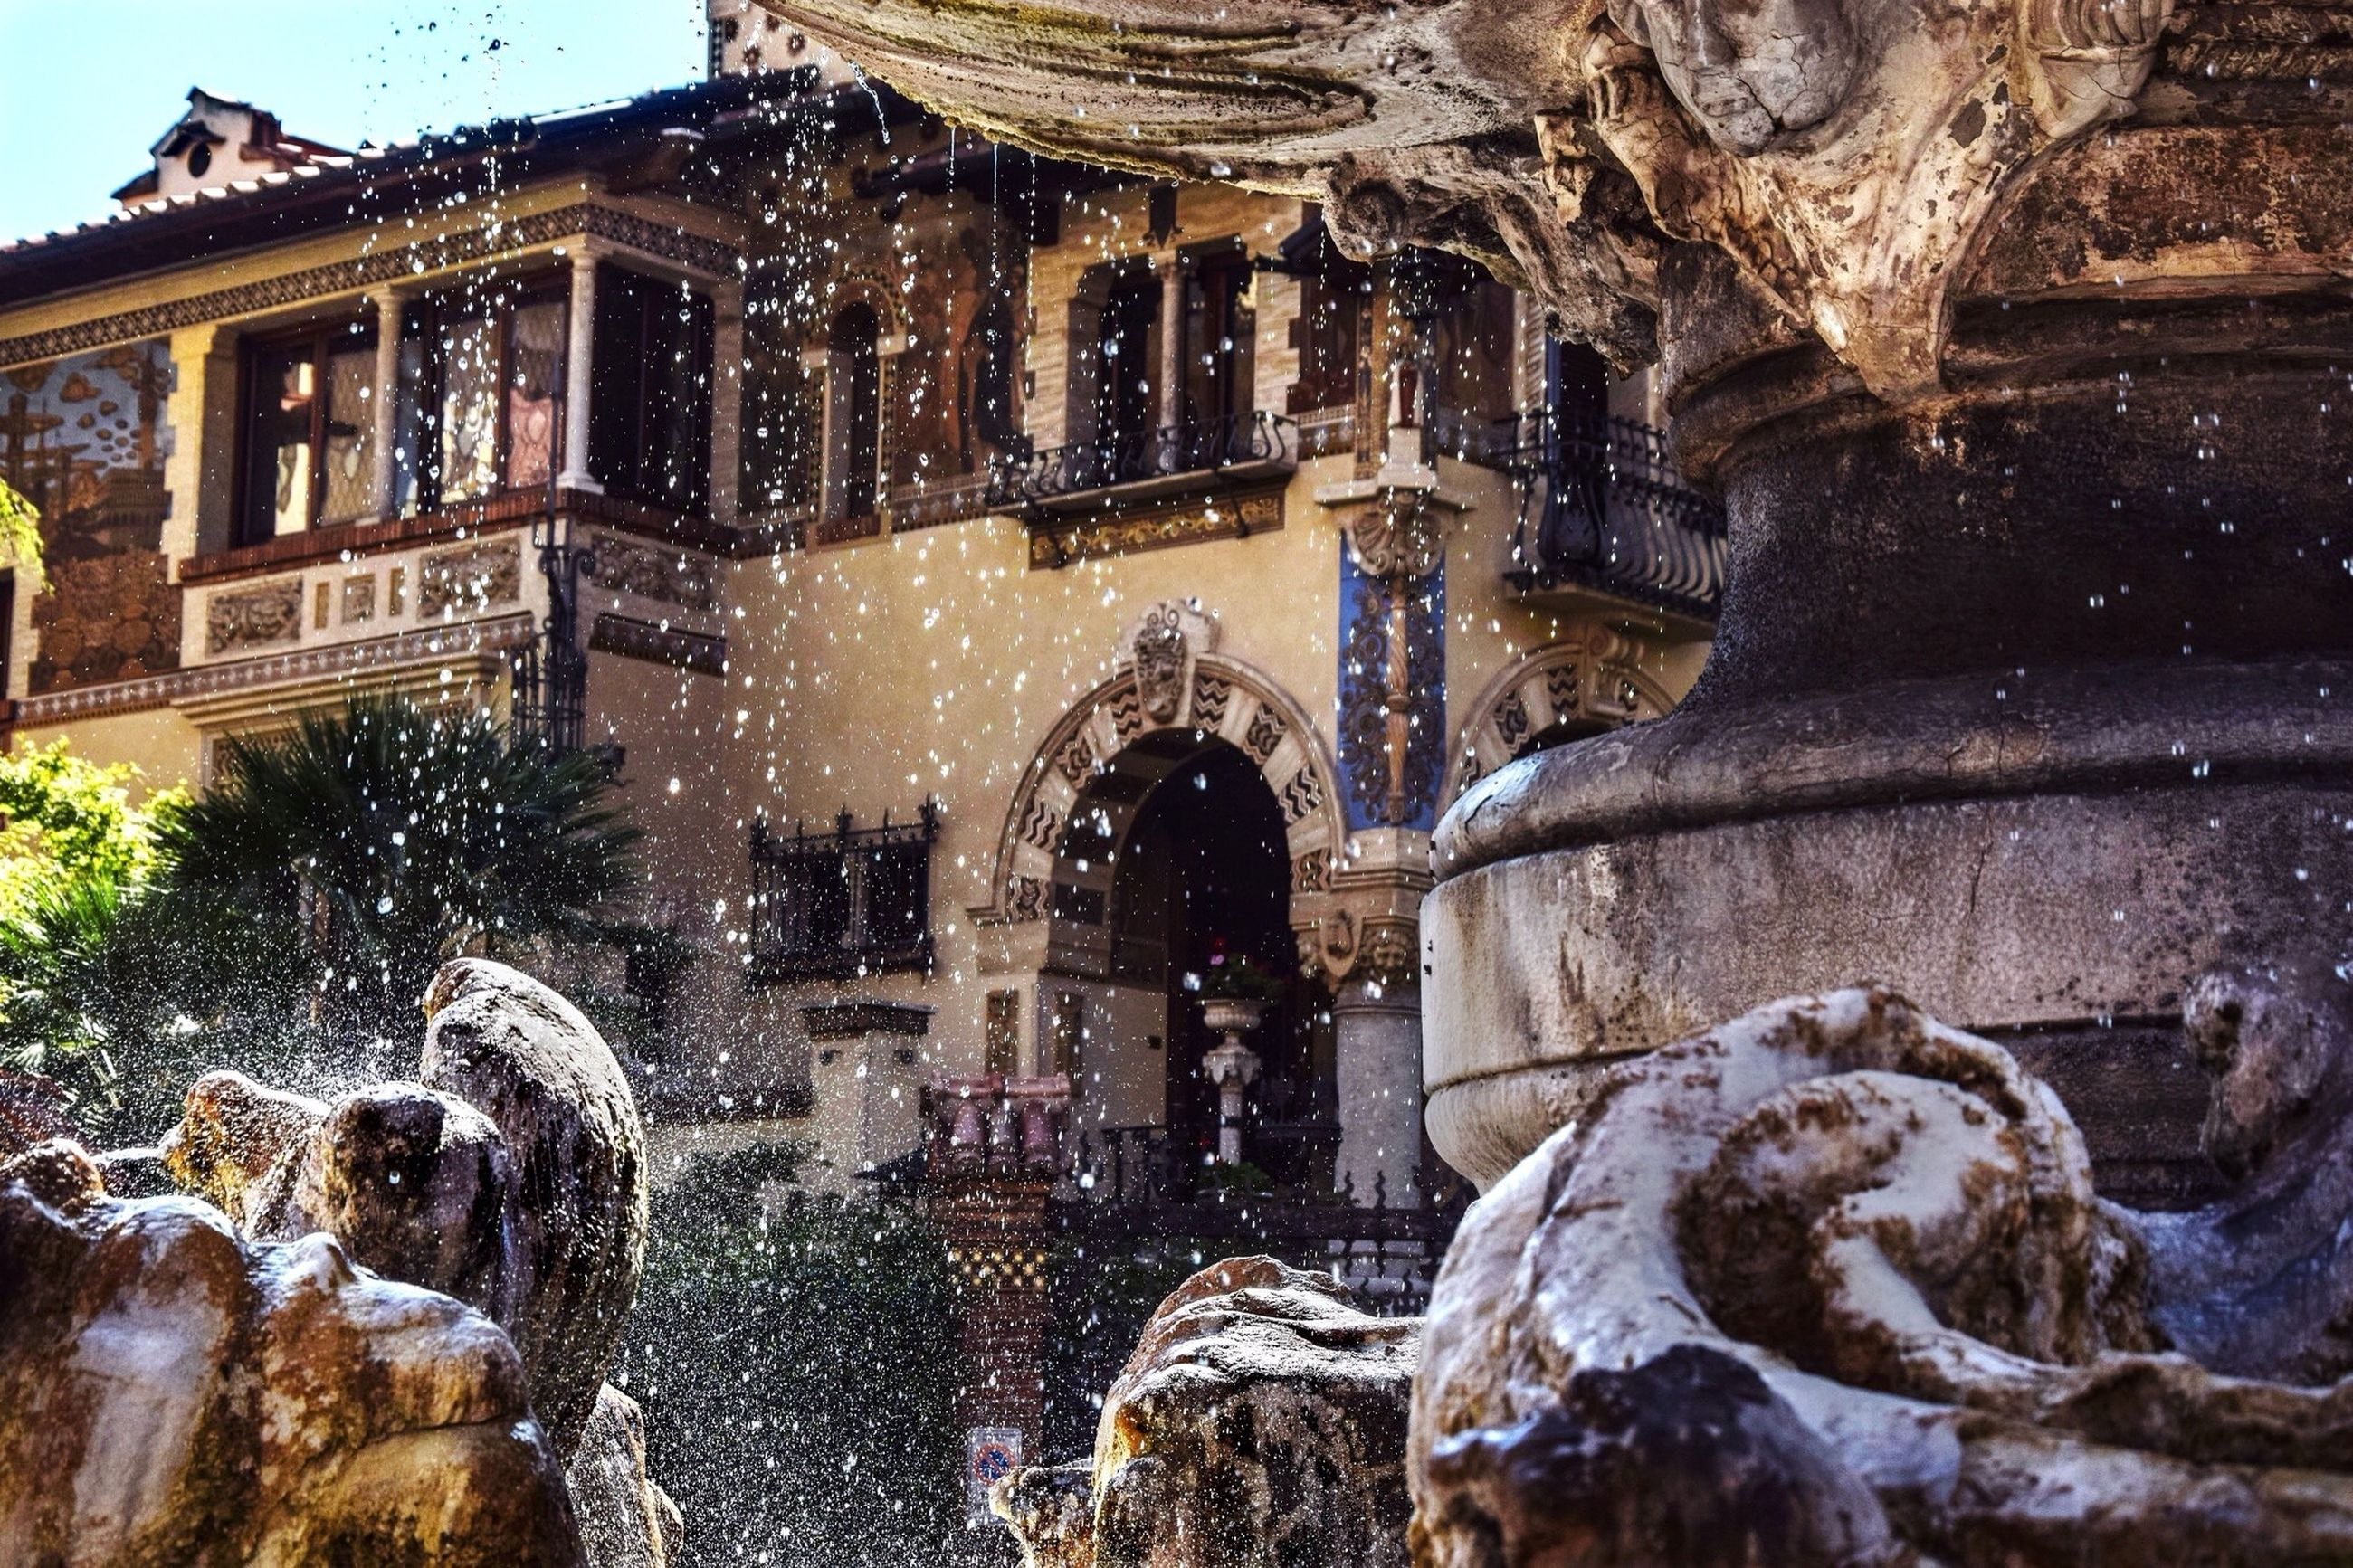 building exterior, architecture, built structure, animal themes, water, one animal, building, outdoors, city, fountain, day, tree, sunlight, no people, house, residential building, window, residential structure, reflection, mammal